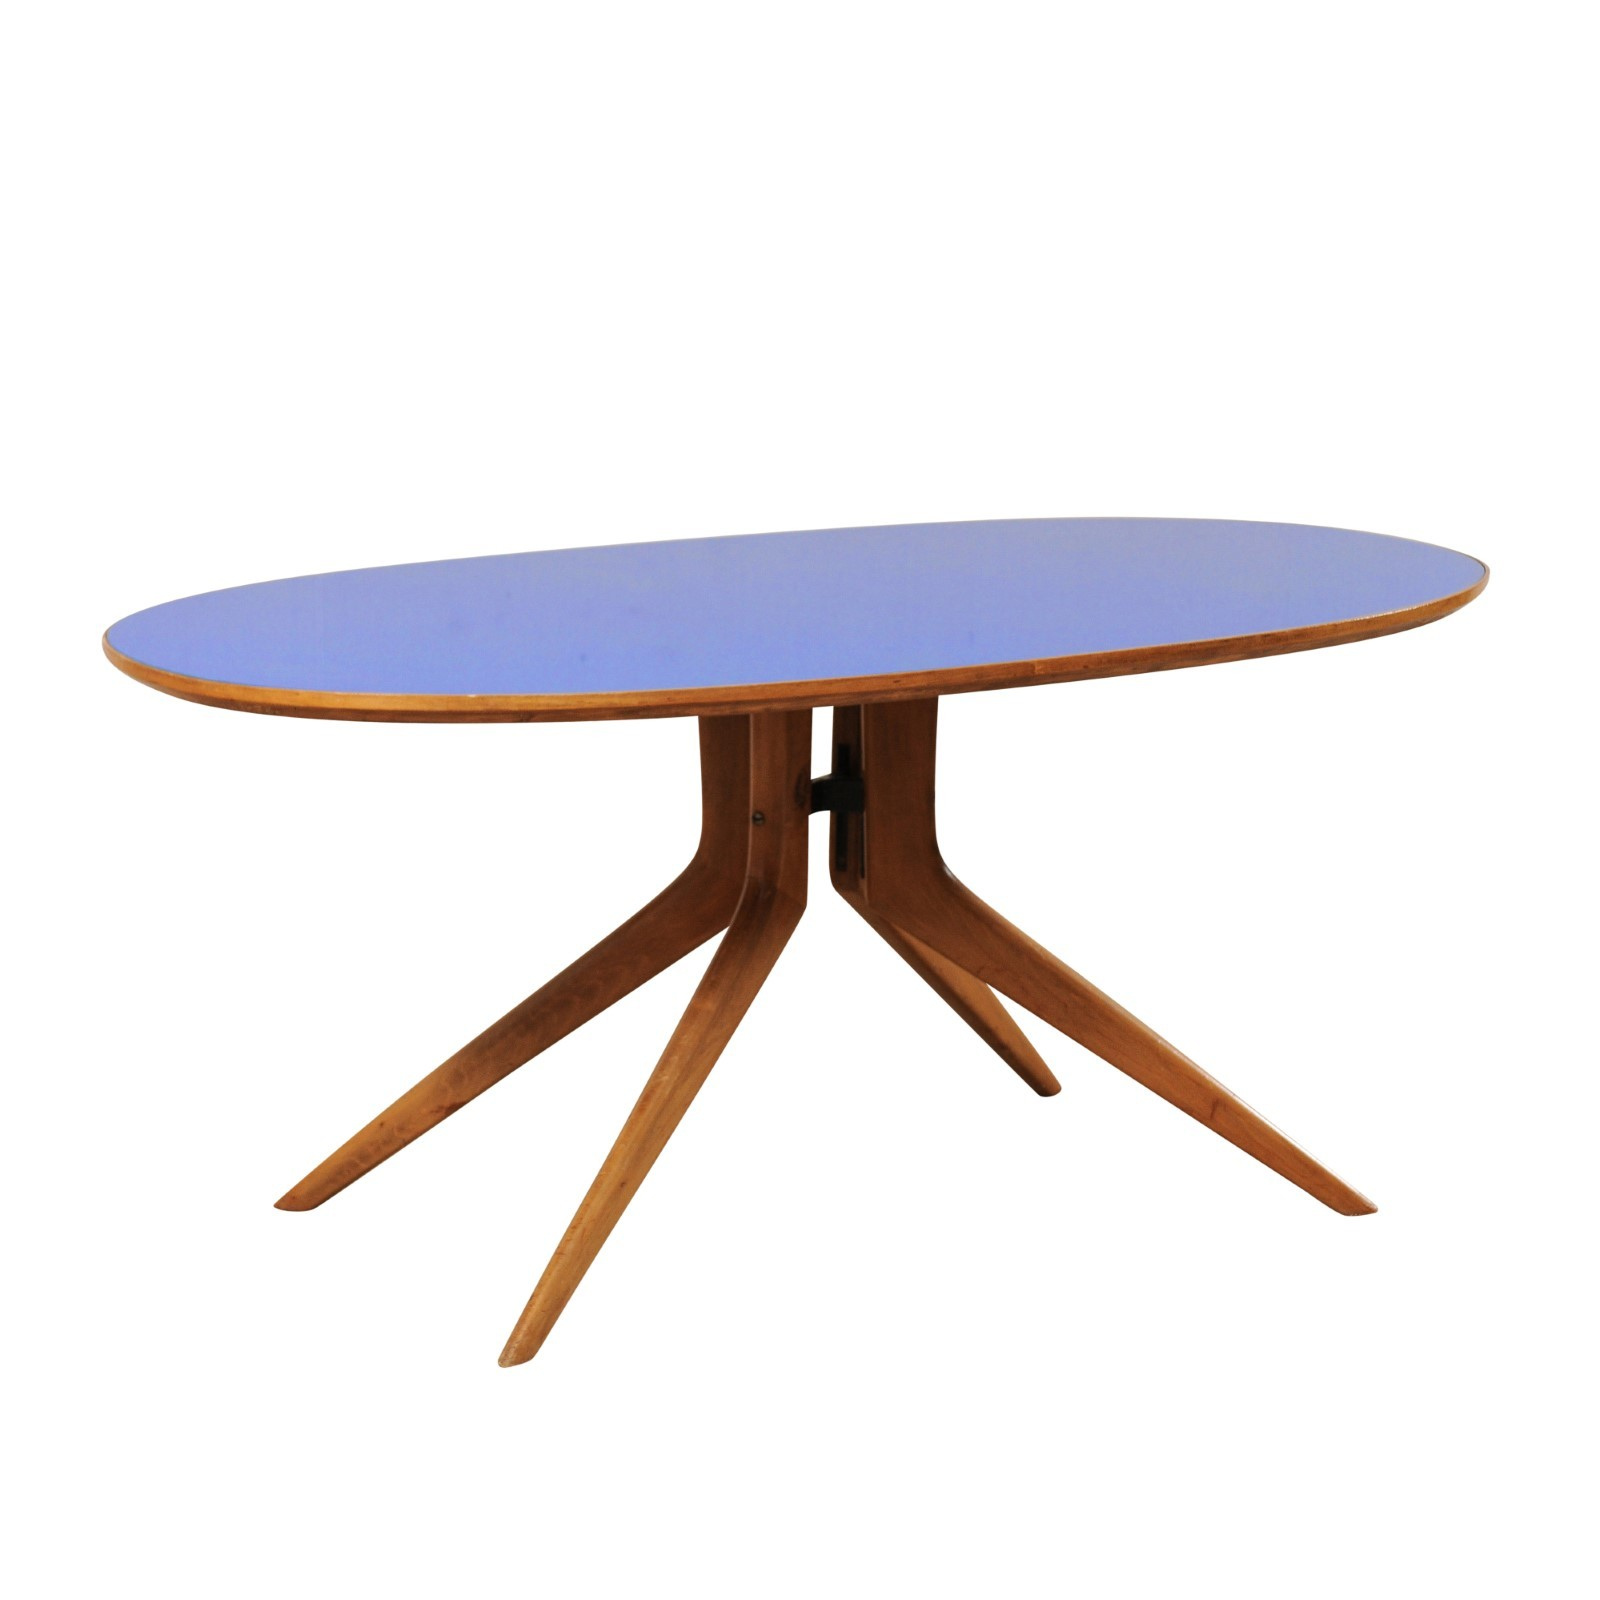 Mid-Century Modern Elliptical Table, Italy